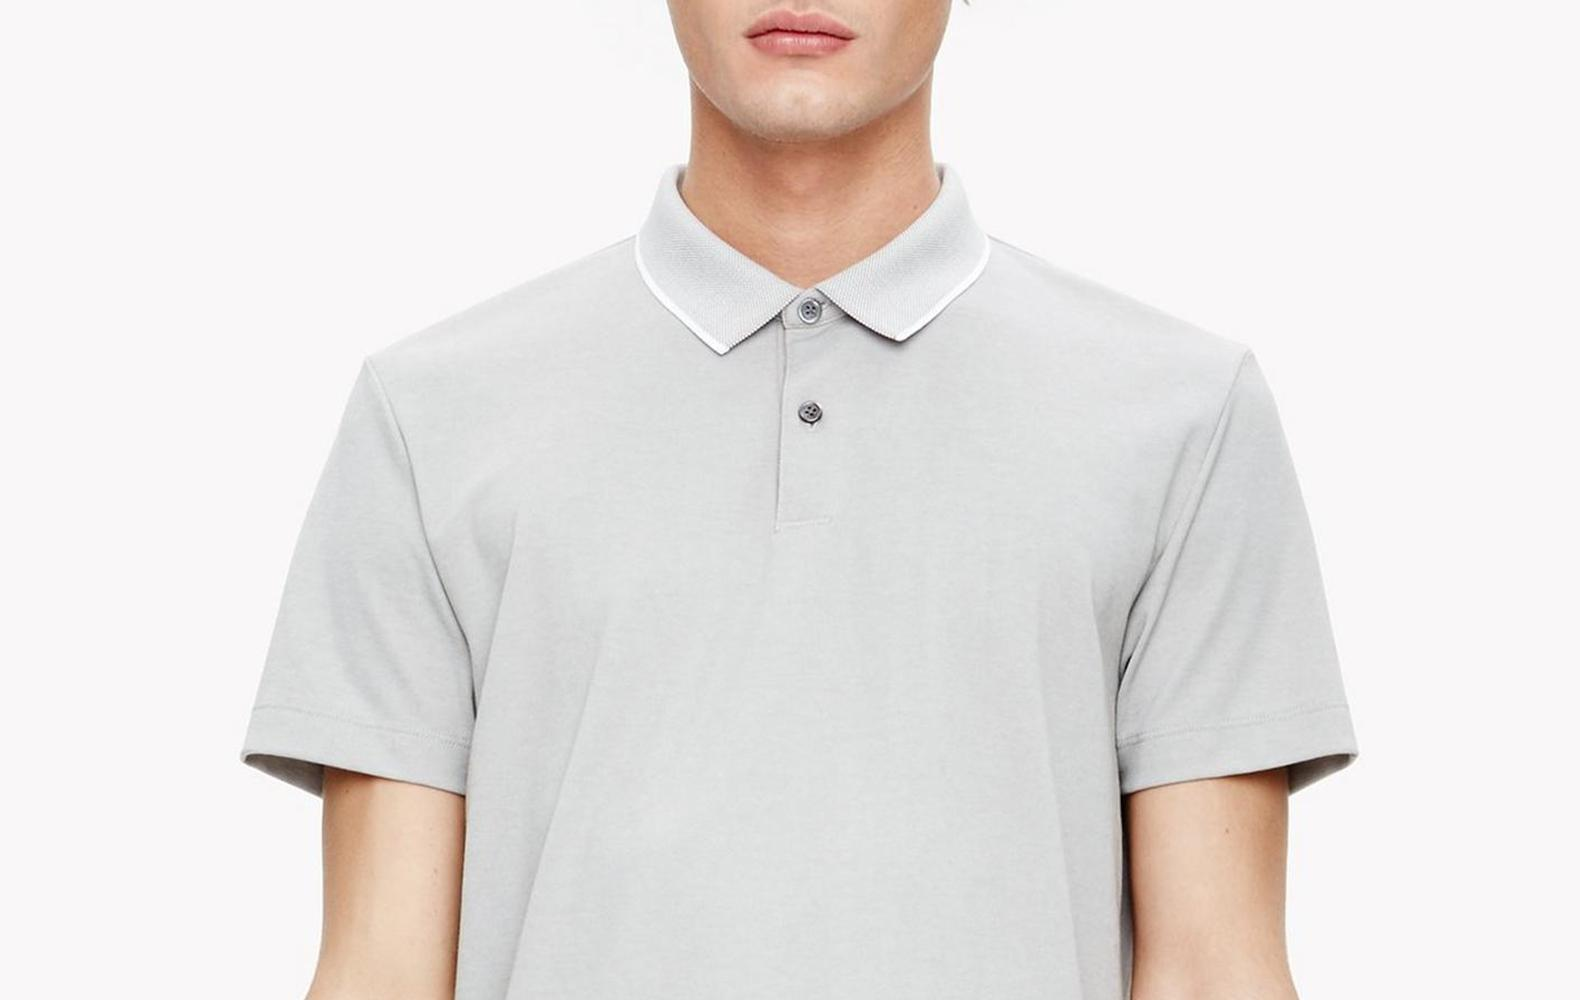 The Refined Polo